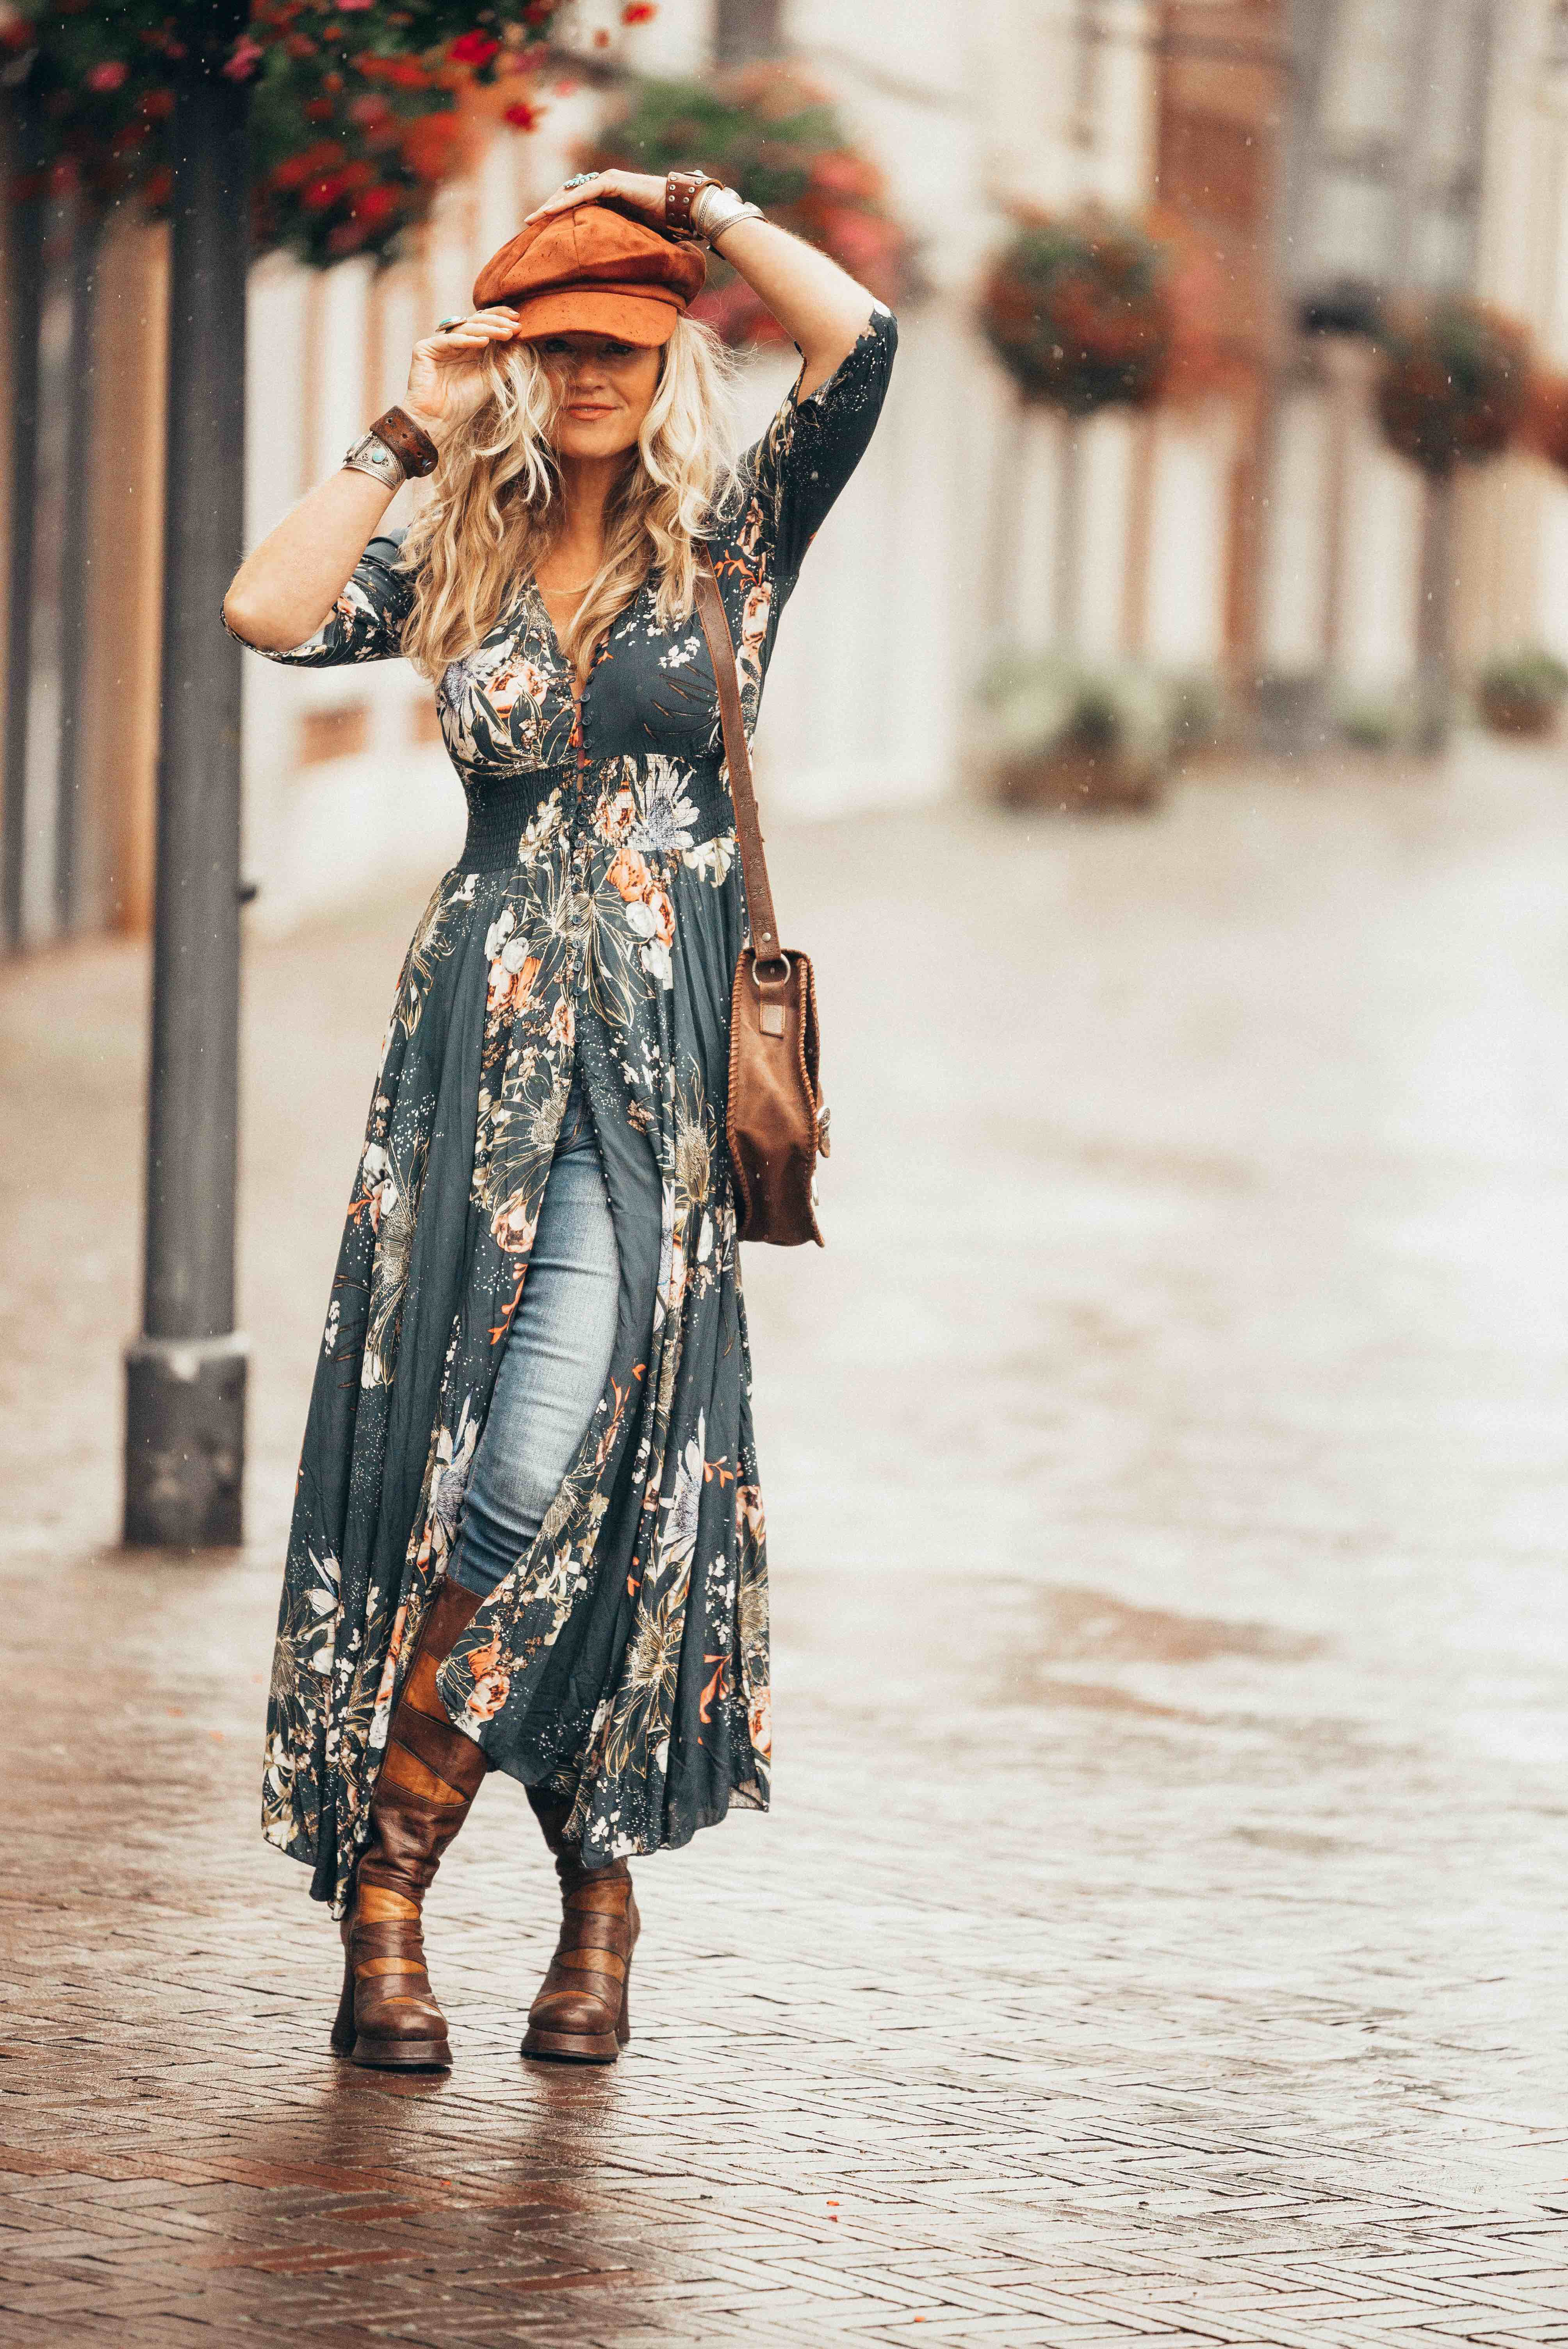 Mixing some vintage to create the perfect bohemian look